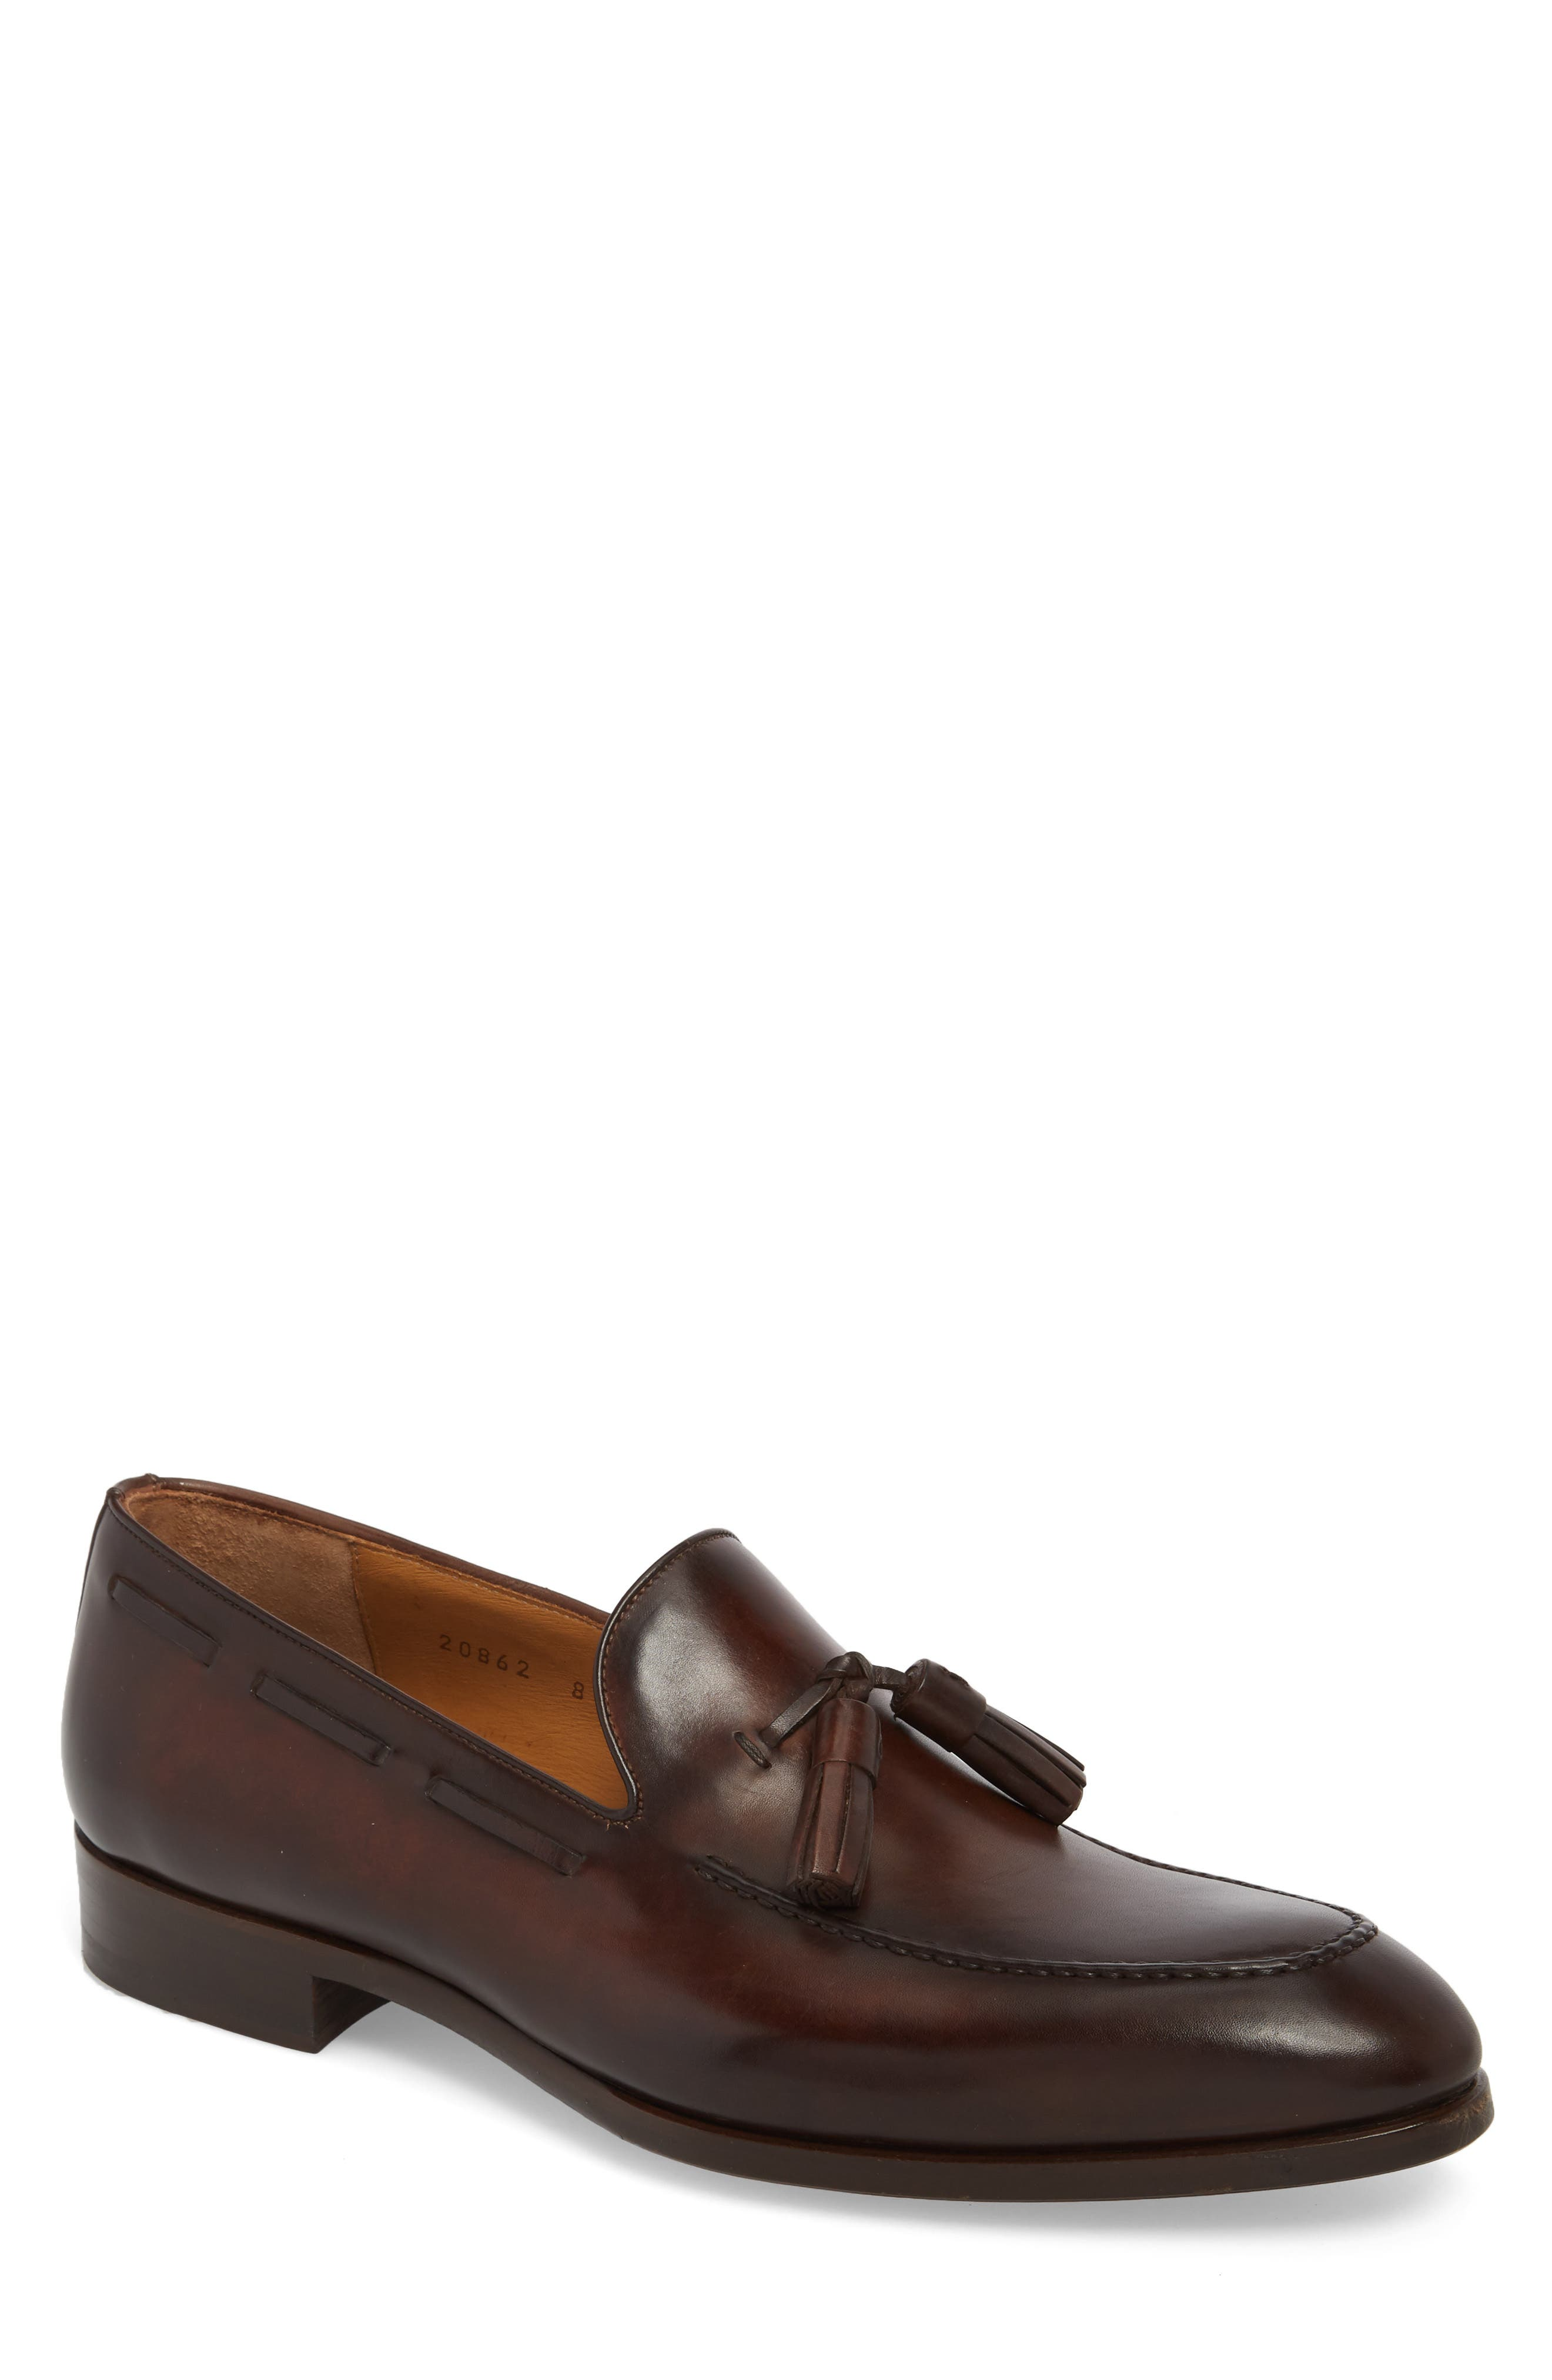 Remy Tasseled Loafer,                             Main thumbnail 1, color,                             240